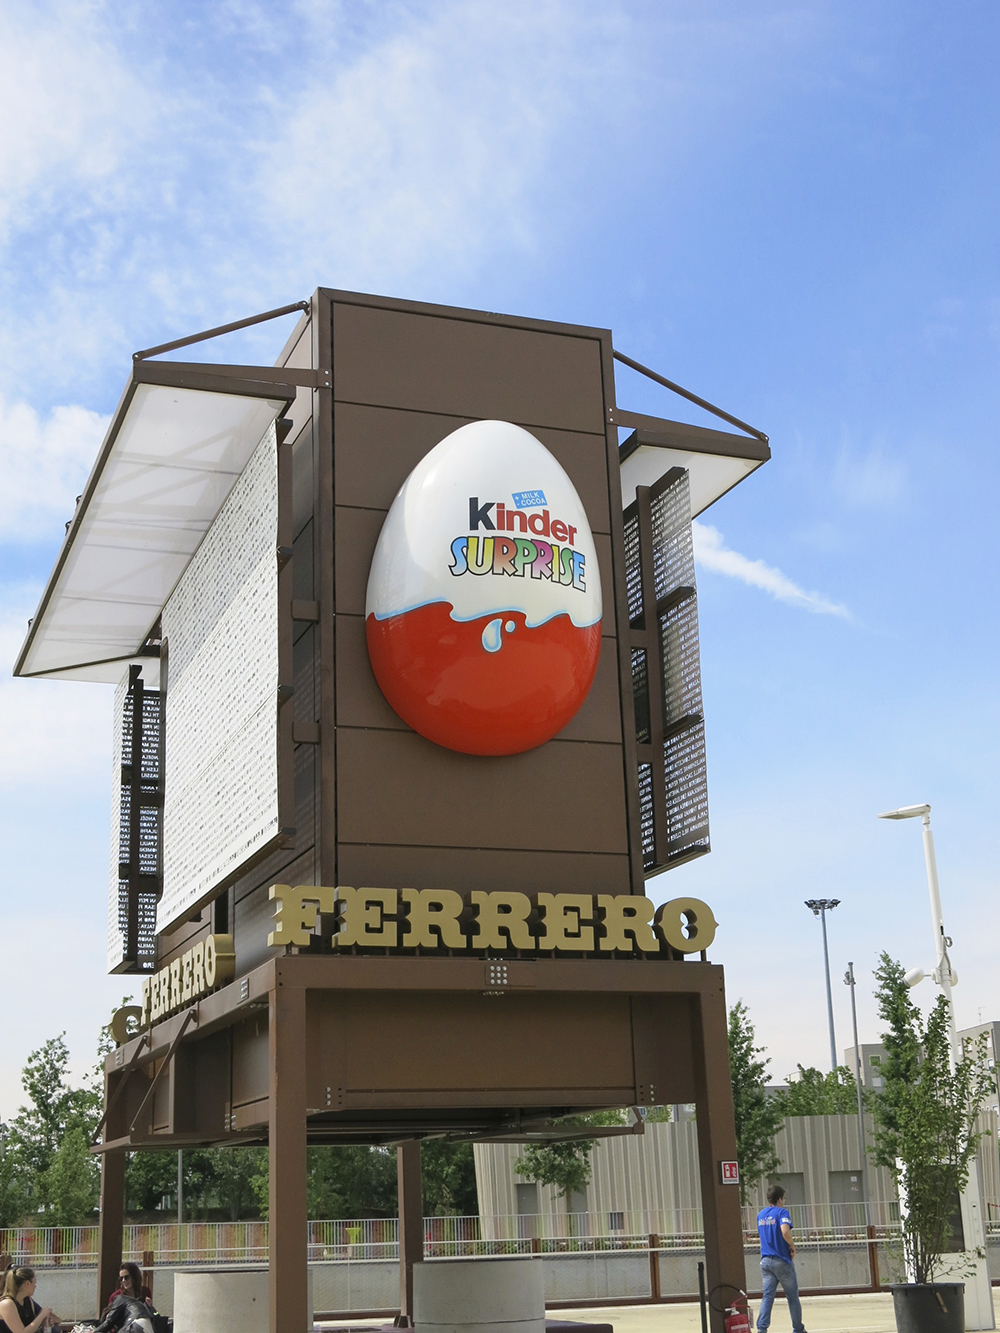 Kinder Surprise Milan Expo